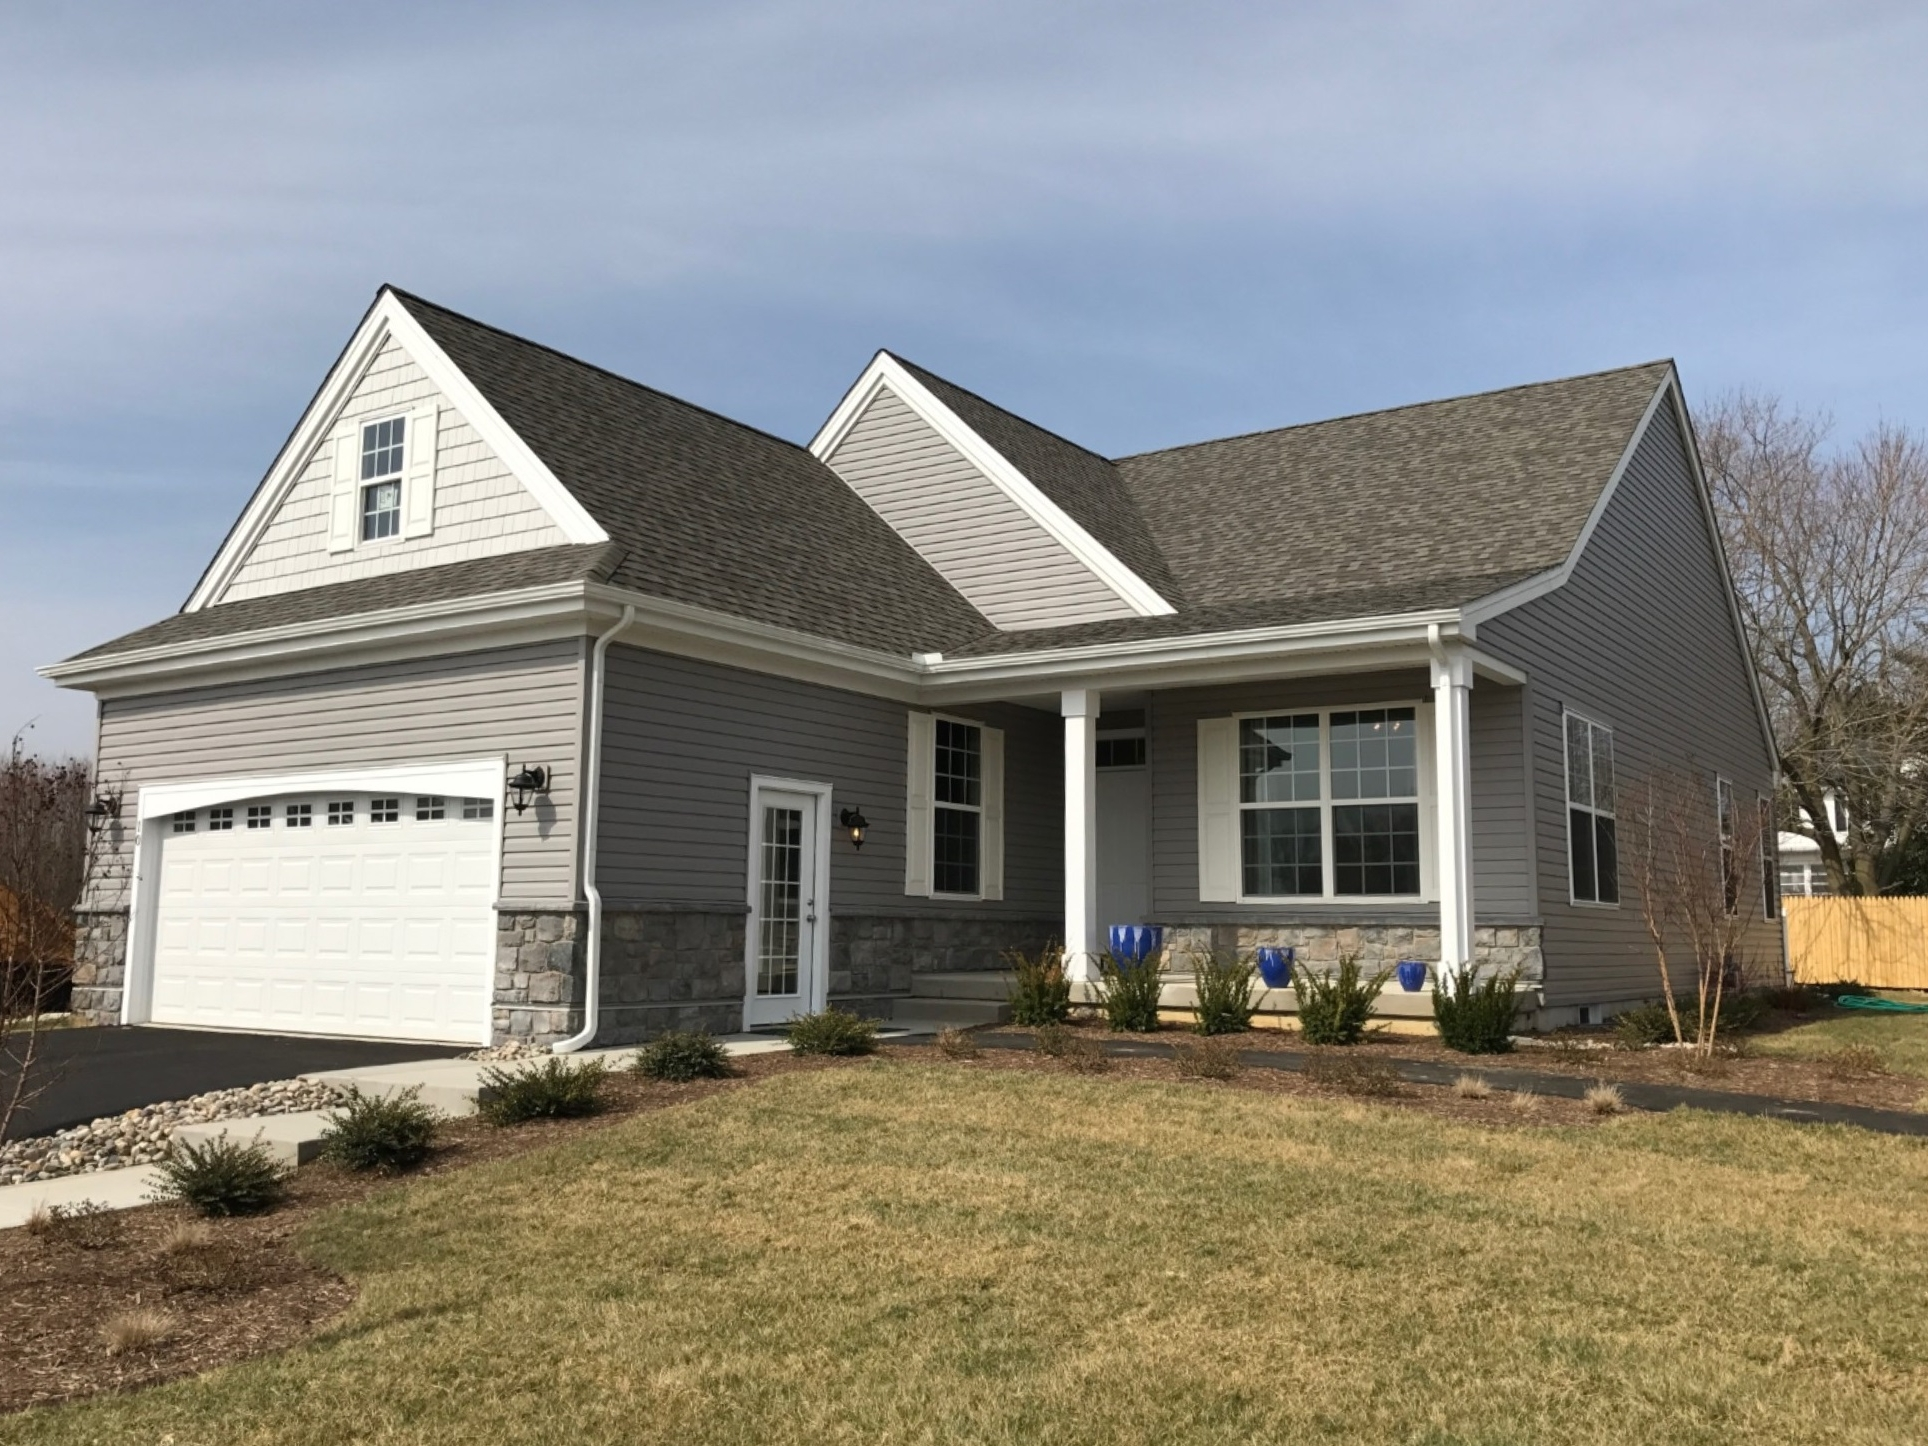 The Alyssum  is one of Ashland's most popular floorplans offering convenient one-level living with an open concept design featuring 2 Bedrooms, 2 Full Baths, 2 car Garage and spacious Owner's Suite.